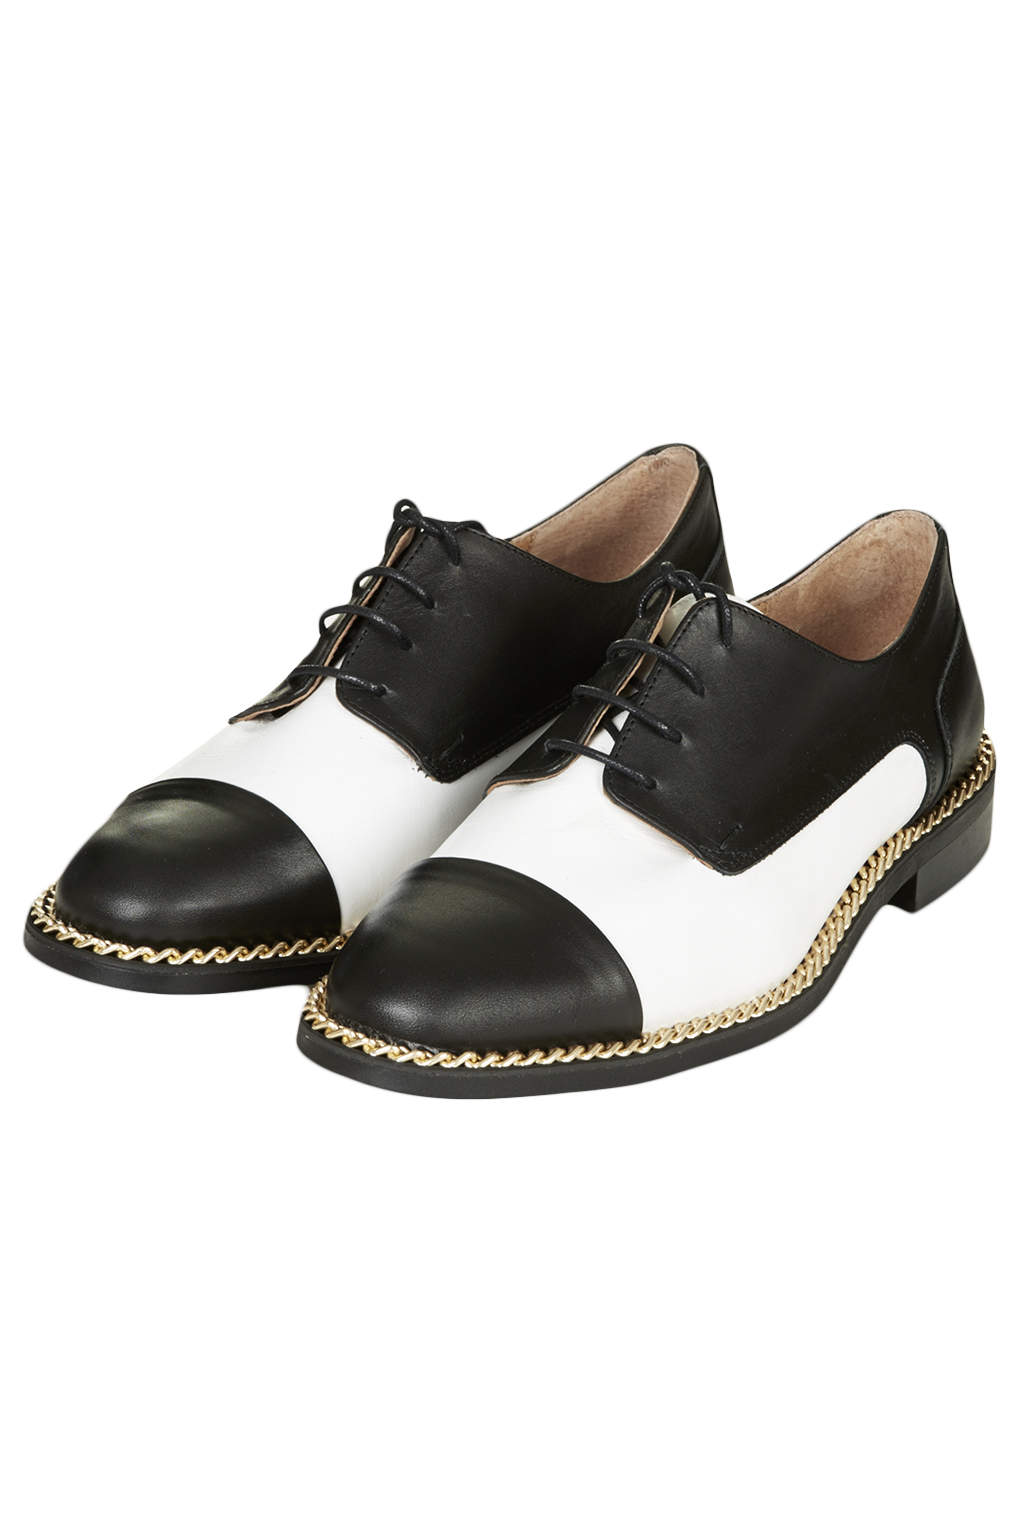 Topshop - Chaussure(90 €)